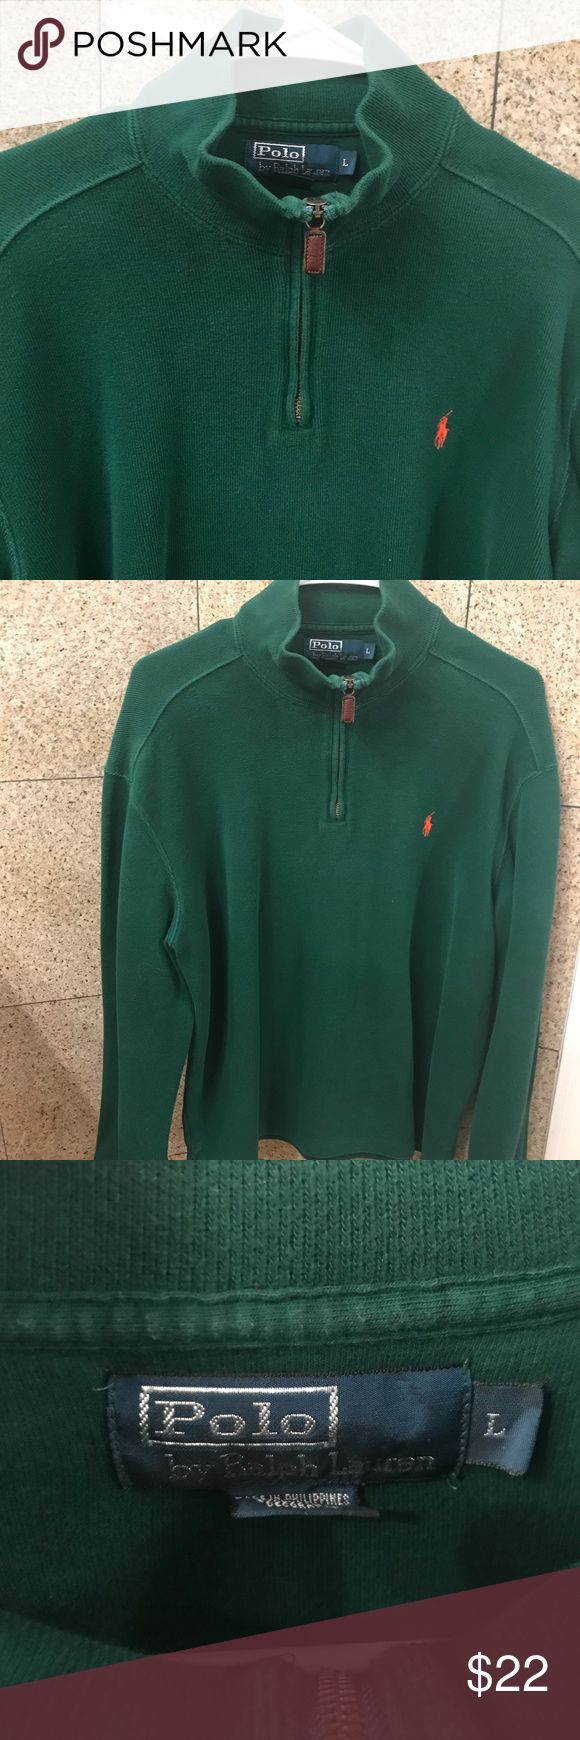 Men's Polo pullover Men's size large Polo Pullover. Emerald green polo with orange polo accent. Polo by Ralph Lauren Sweaters Zip Up